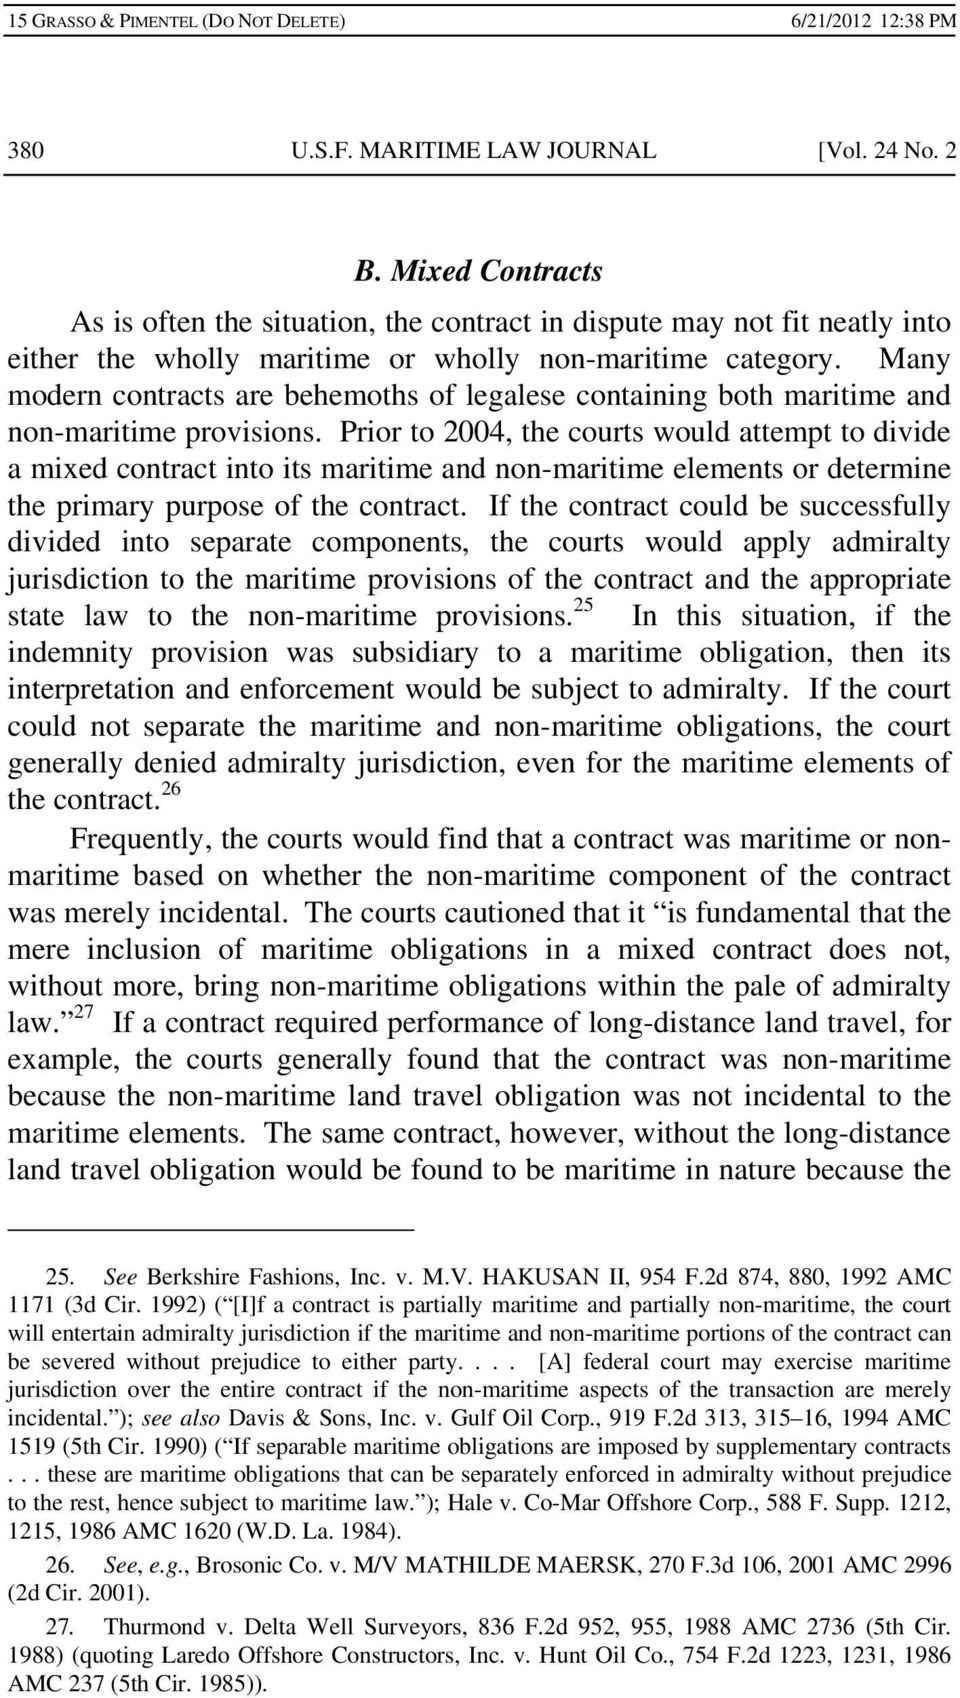 Prior to 2004, the courts would attempt to divide a mixed contract into its maritime and non-maritime elements or determine the primary purpose of the contract.